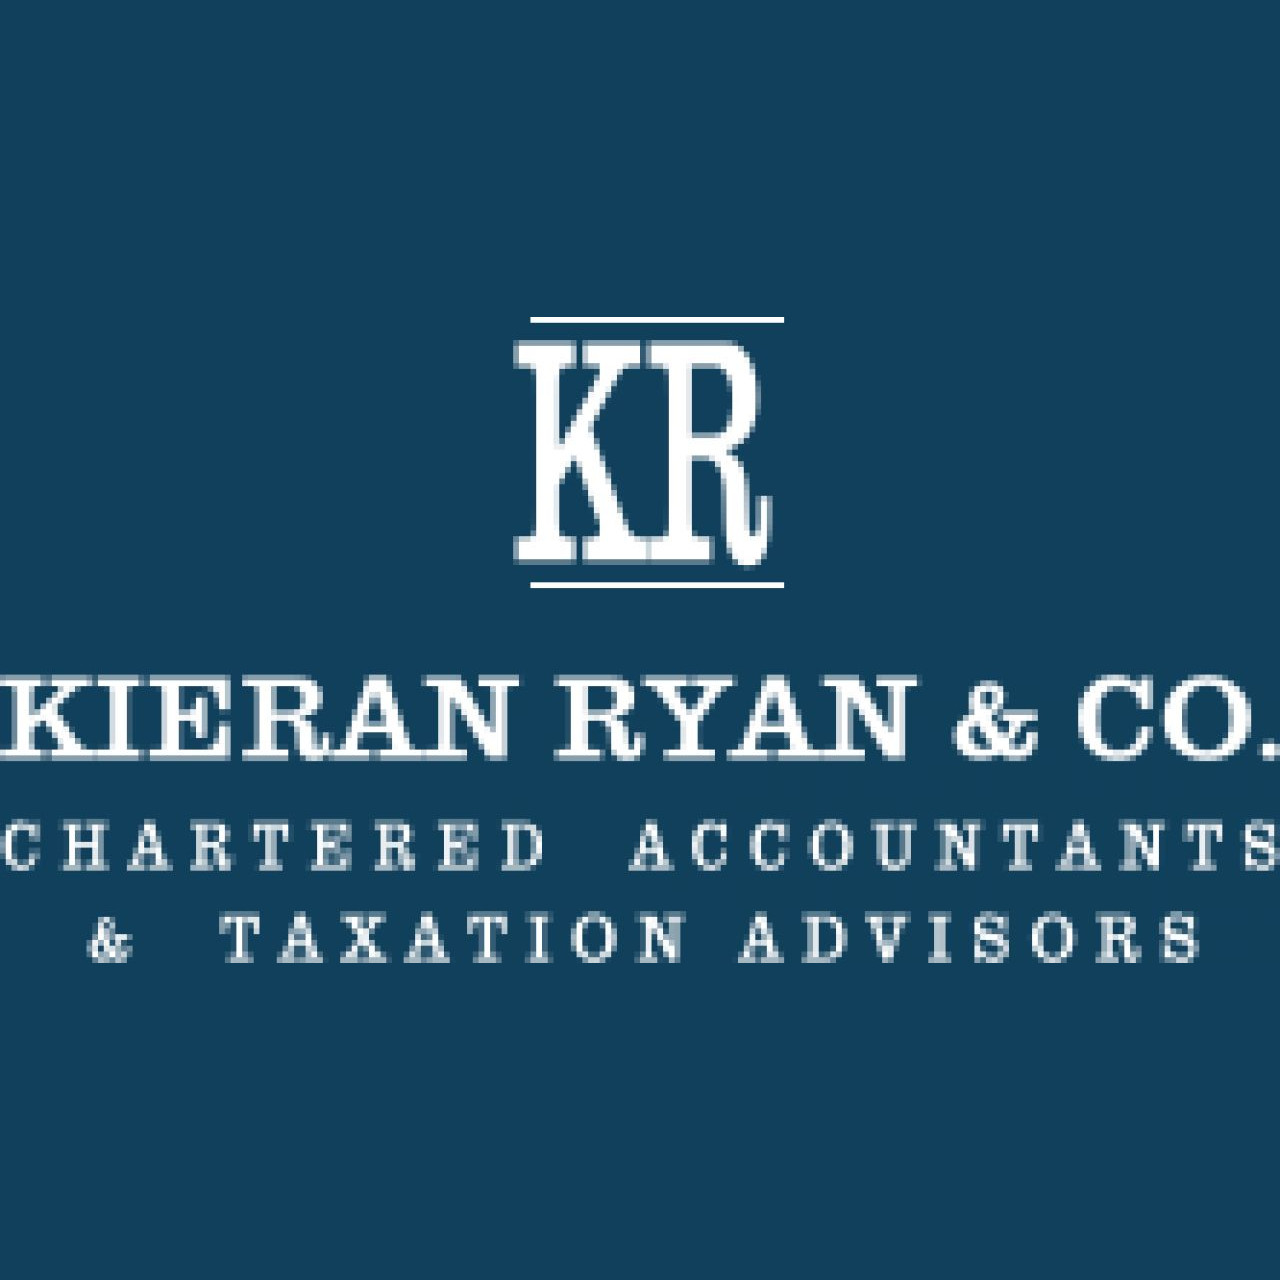 Kieran Ryan & Co.